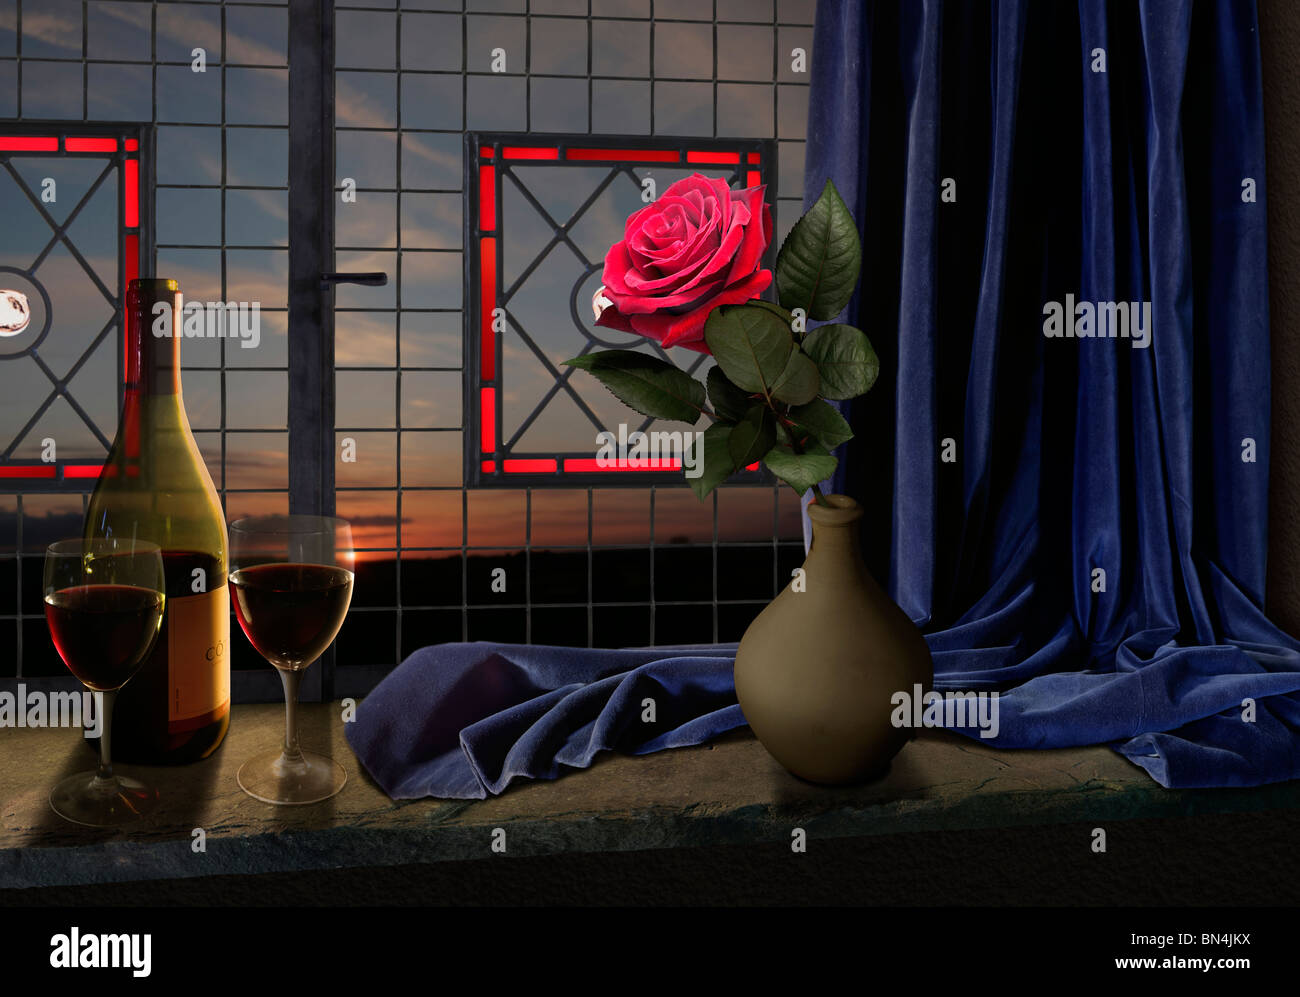 red rose wine and blue curtain on a window seal with sunset - Stock Image